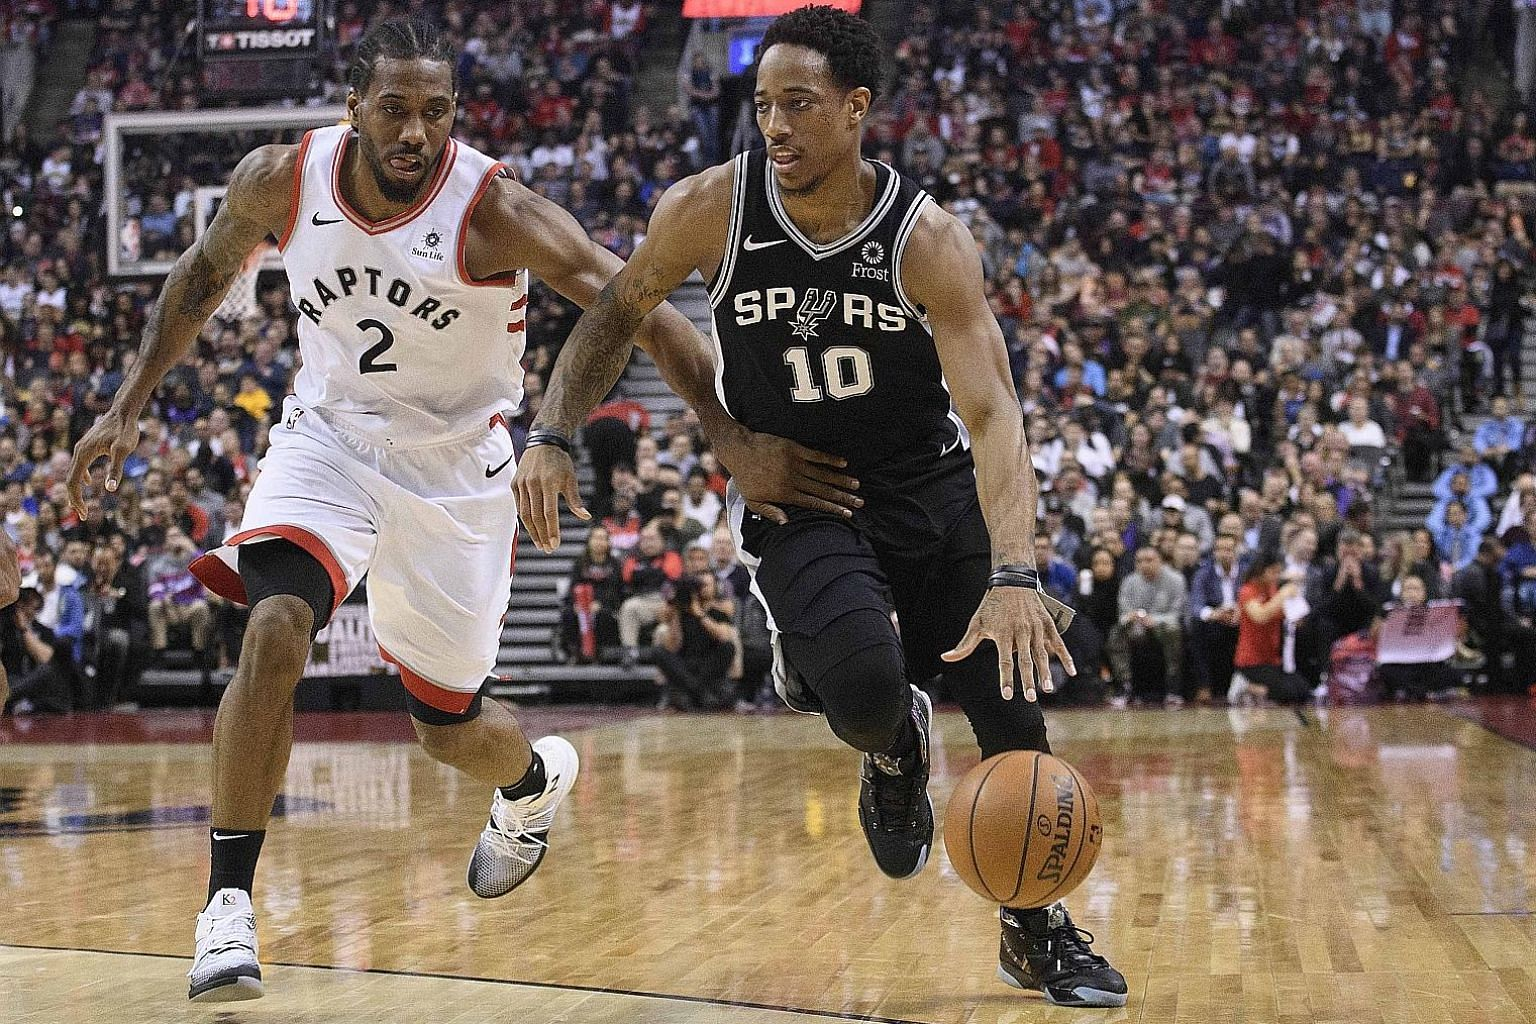 San Antonio Spurs guard DeMar DeRozan (right) shielding the ball from Toronto Raptors forward Kawhi Leonard during their National Basketball Association match at the Scotiabank Arena on Friday. Leonard scored the final four points in the Raptors' 120